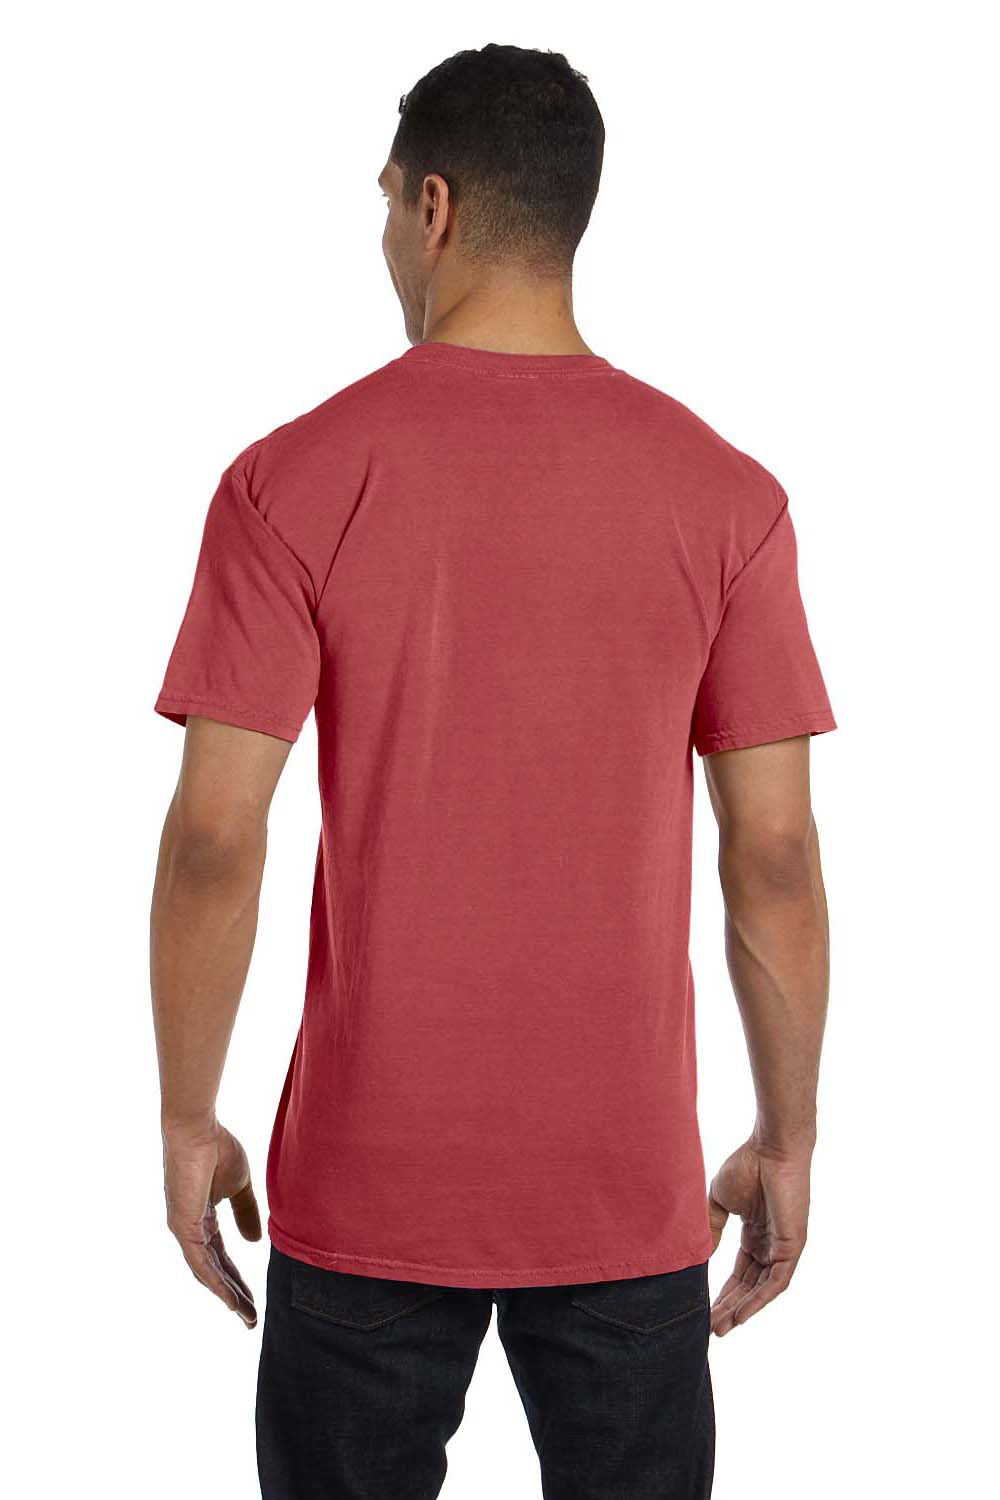 Comfort Colors 6030CC Mens Short Sleeve Crewneck T-Shirt w/ Pocket Crimson Red Back